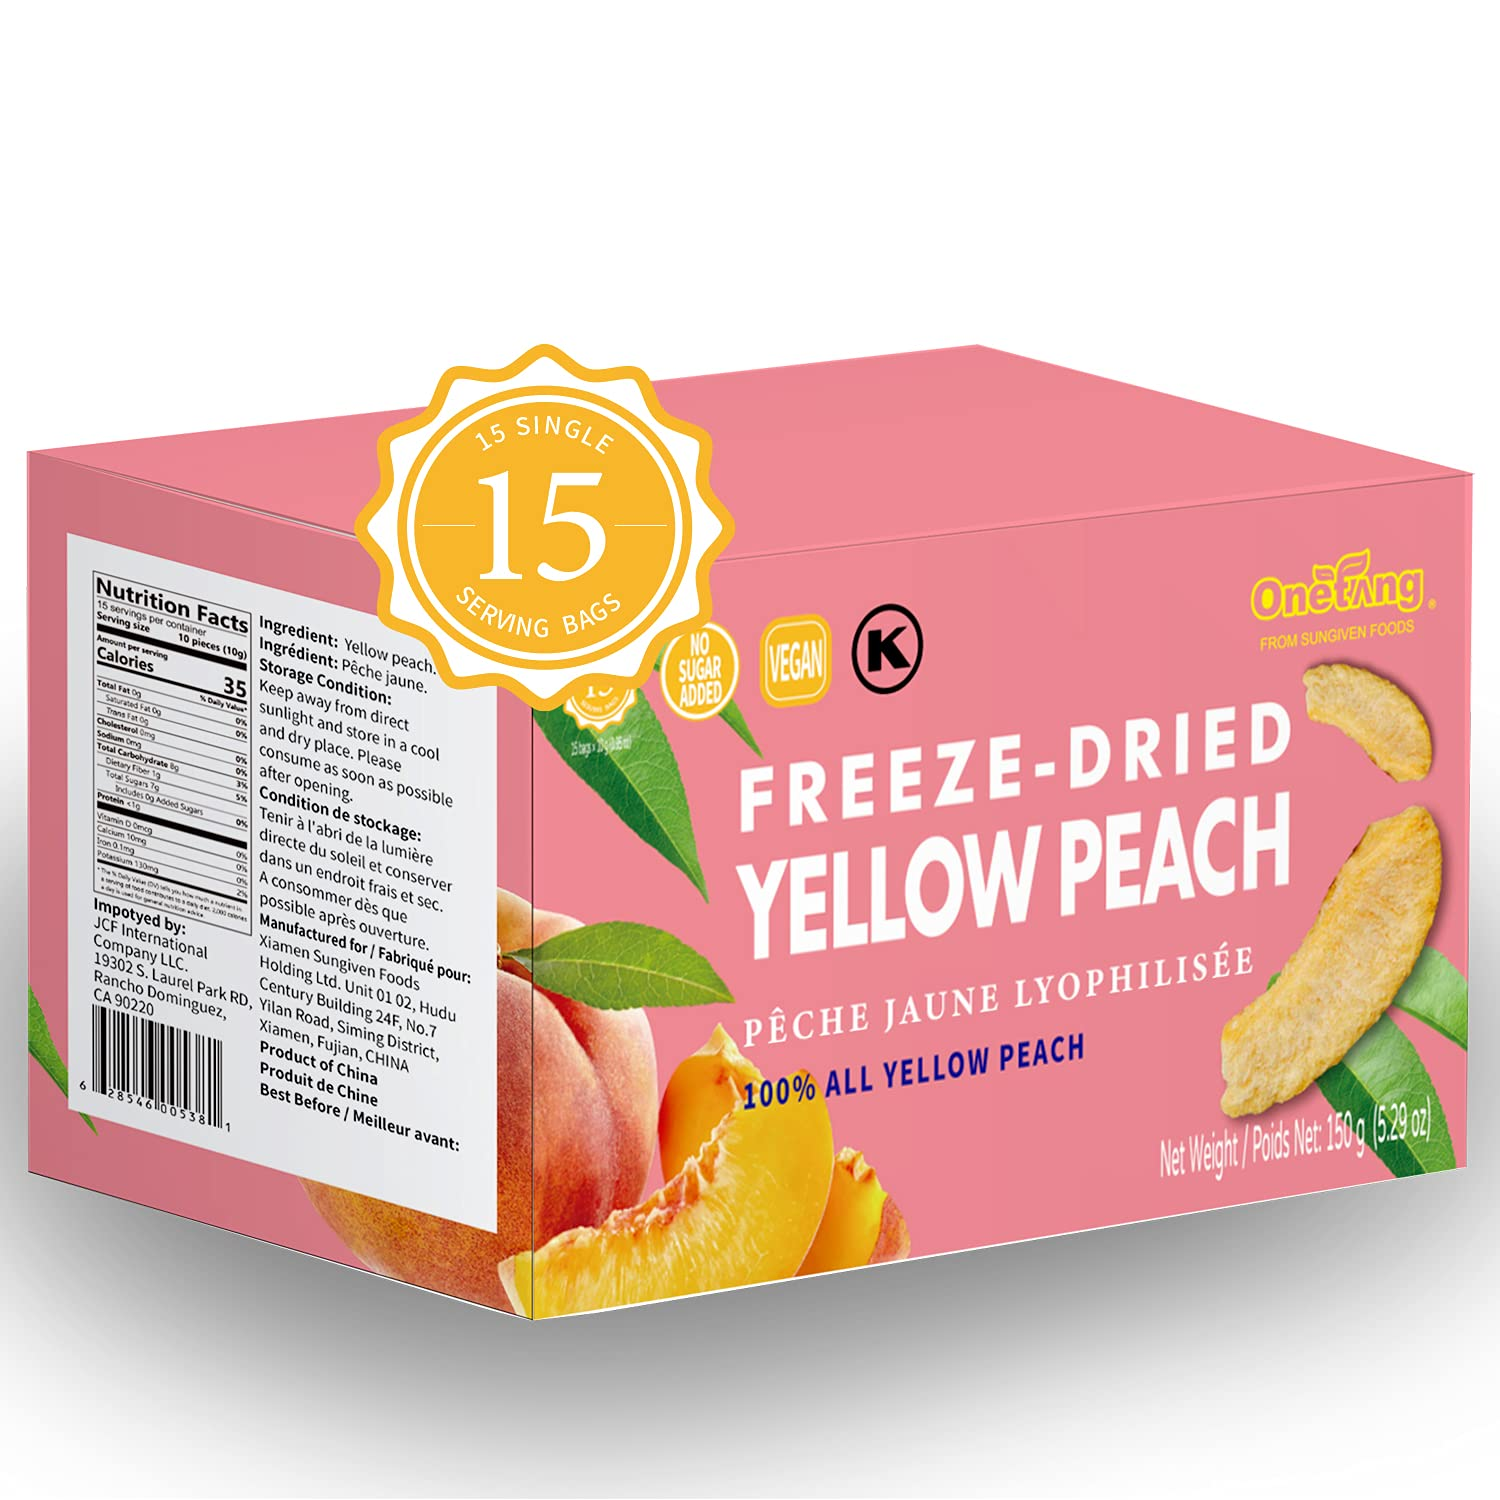 ONETANG Freeze-Dried Fruit Yellow Peach, 15 Pack Single-Serve Pack, Non GMO, Kosher, No Add Sugar, Gluten free, Vegan, Healthy Snack 0.35 Ounce